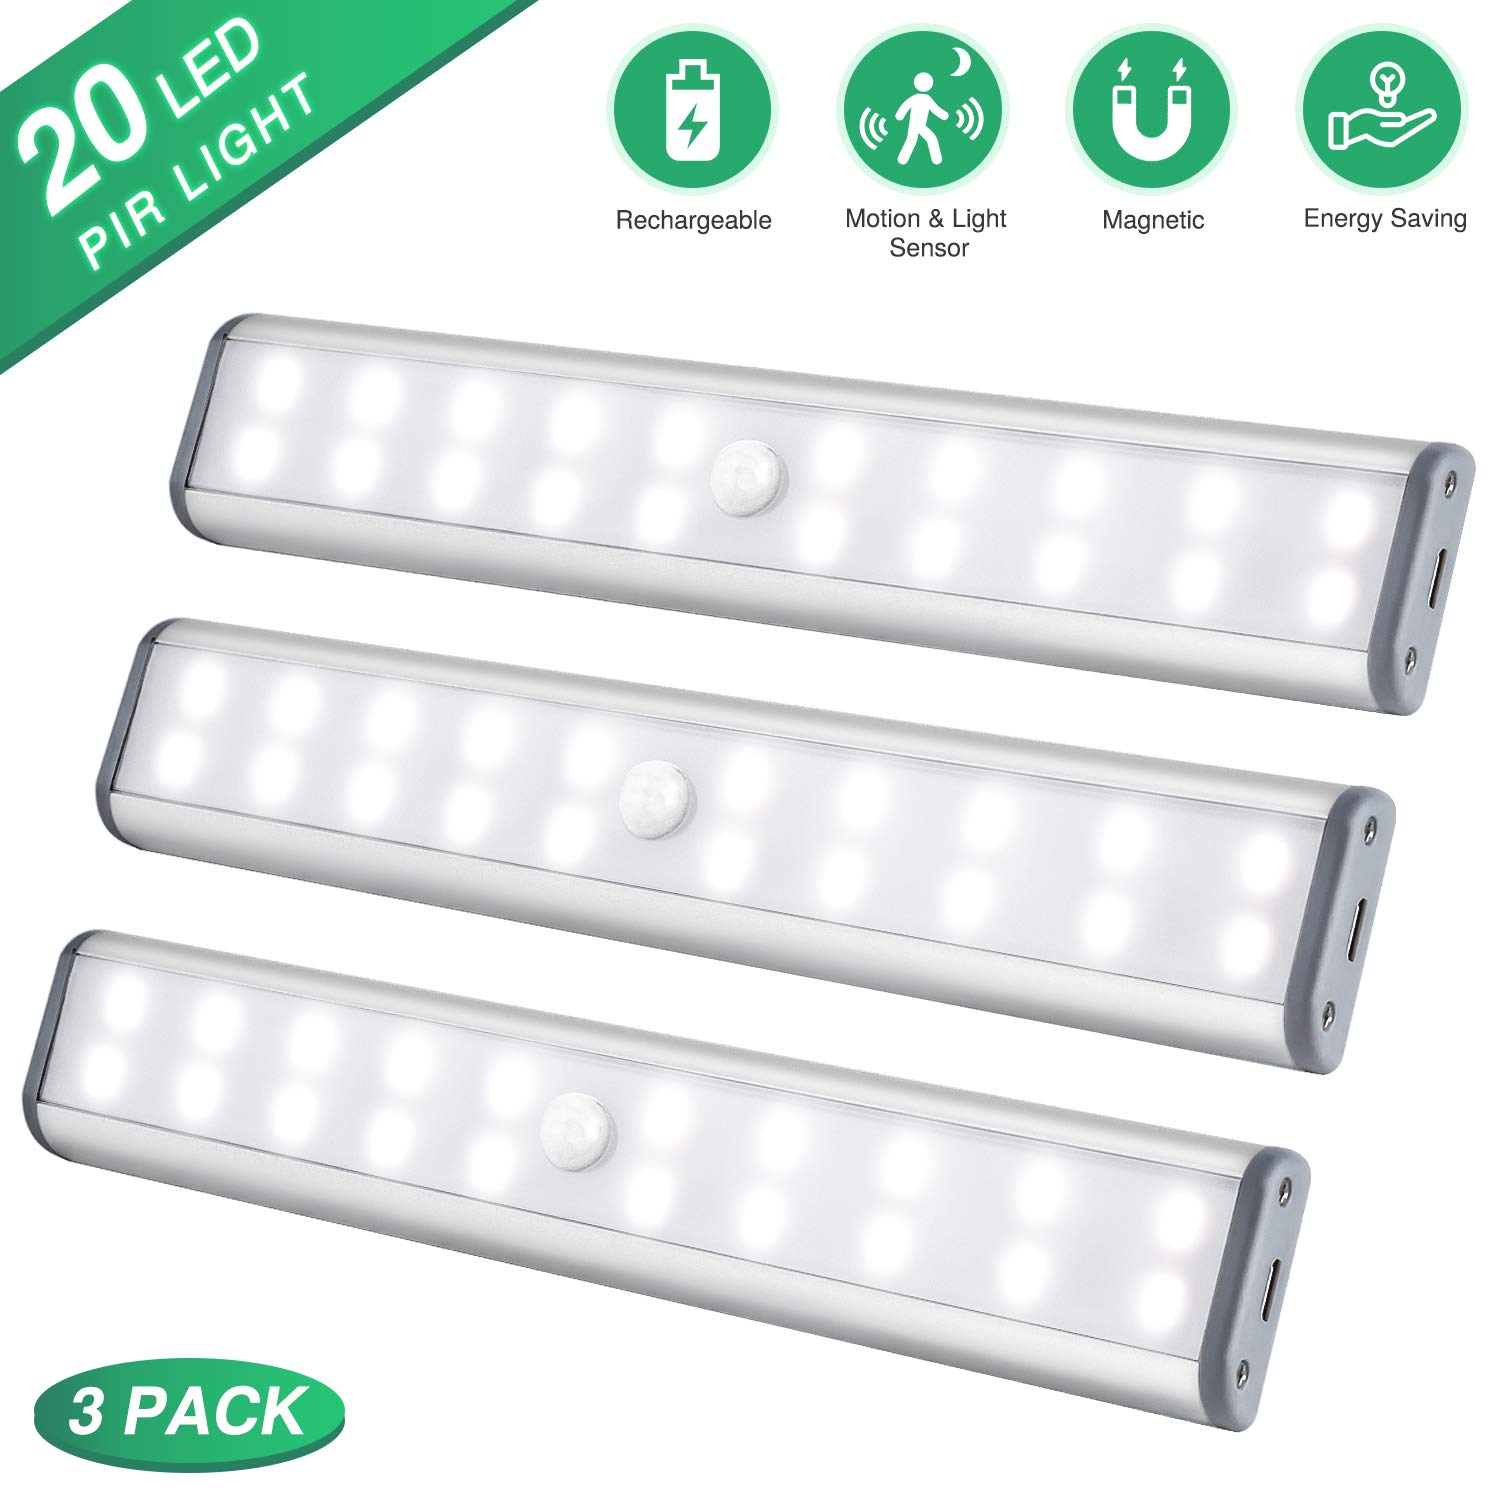 Under Cabinet Lighting Closet Light 20 LEDs 3 Packs, Wireless Rechargeable Cabinet Lights, Magnetic Under Counter Lighting, LED Motion Sensor Night Light for Closet Cabinet Wardrobe Stairs White